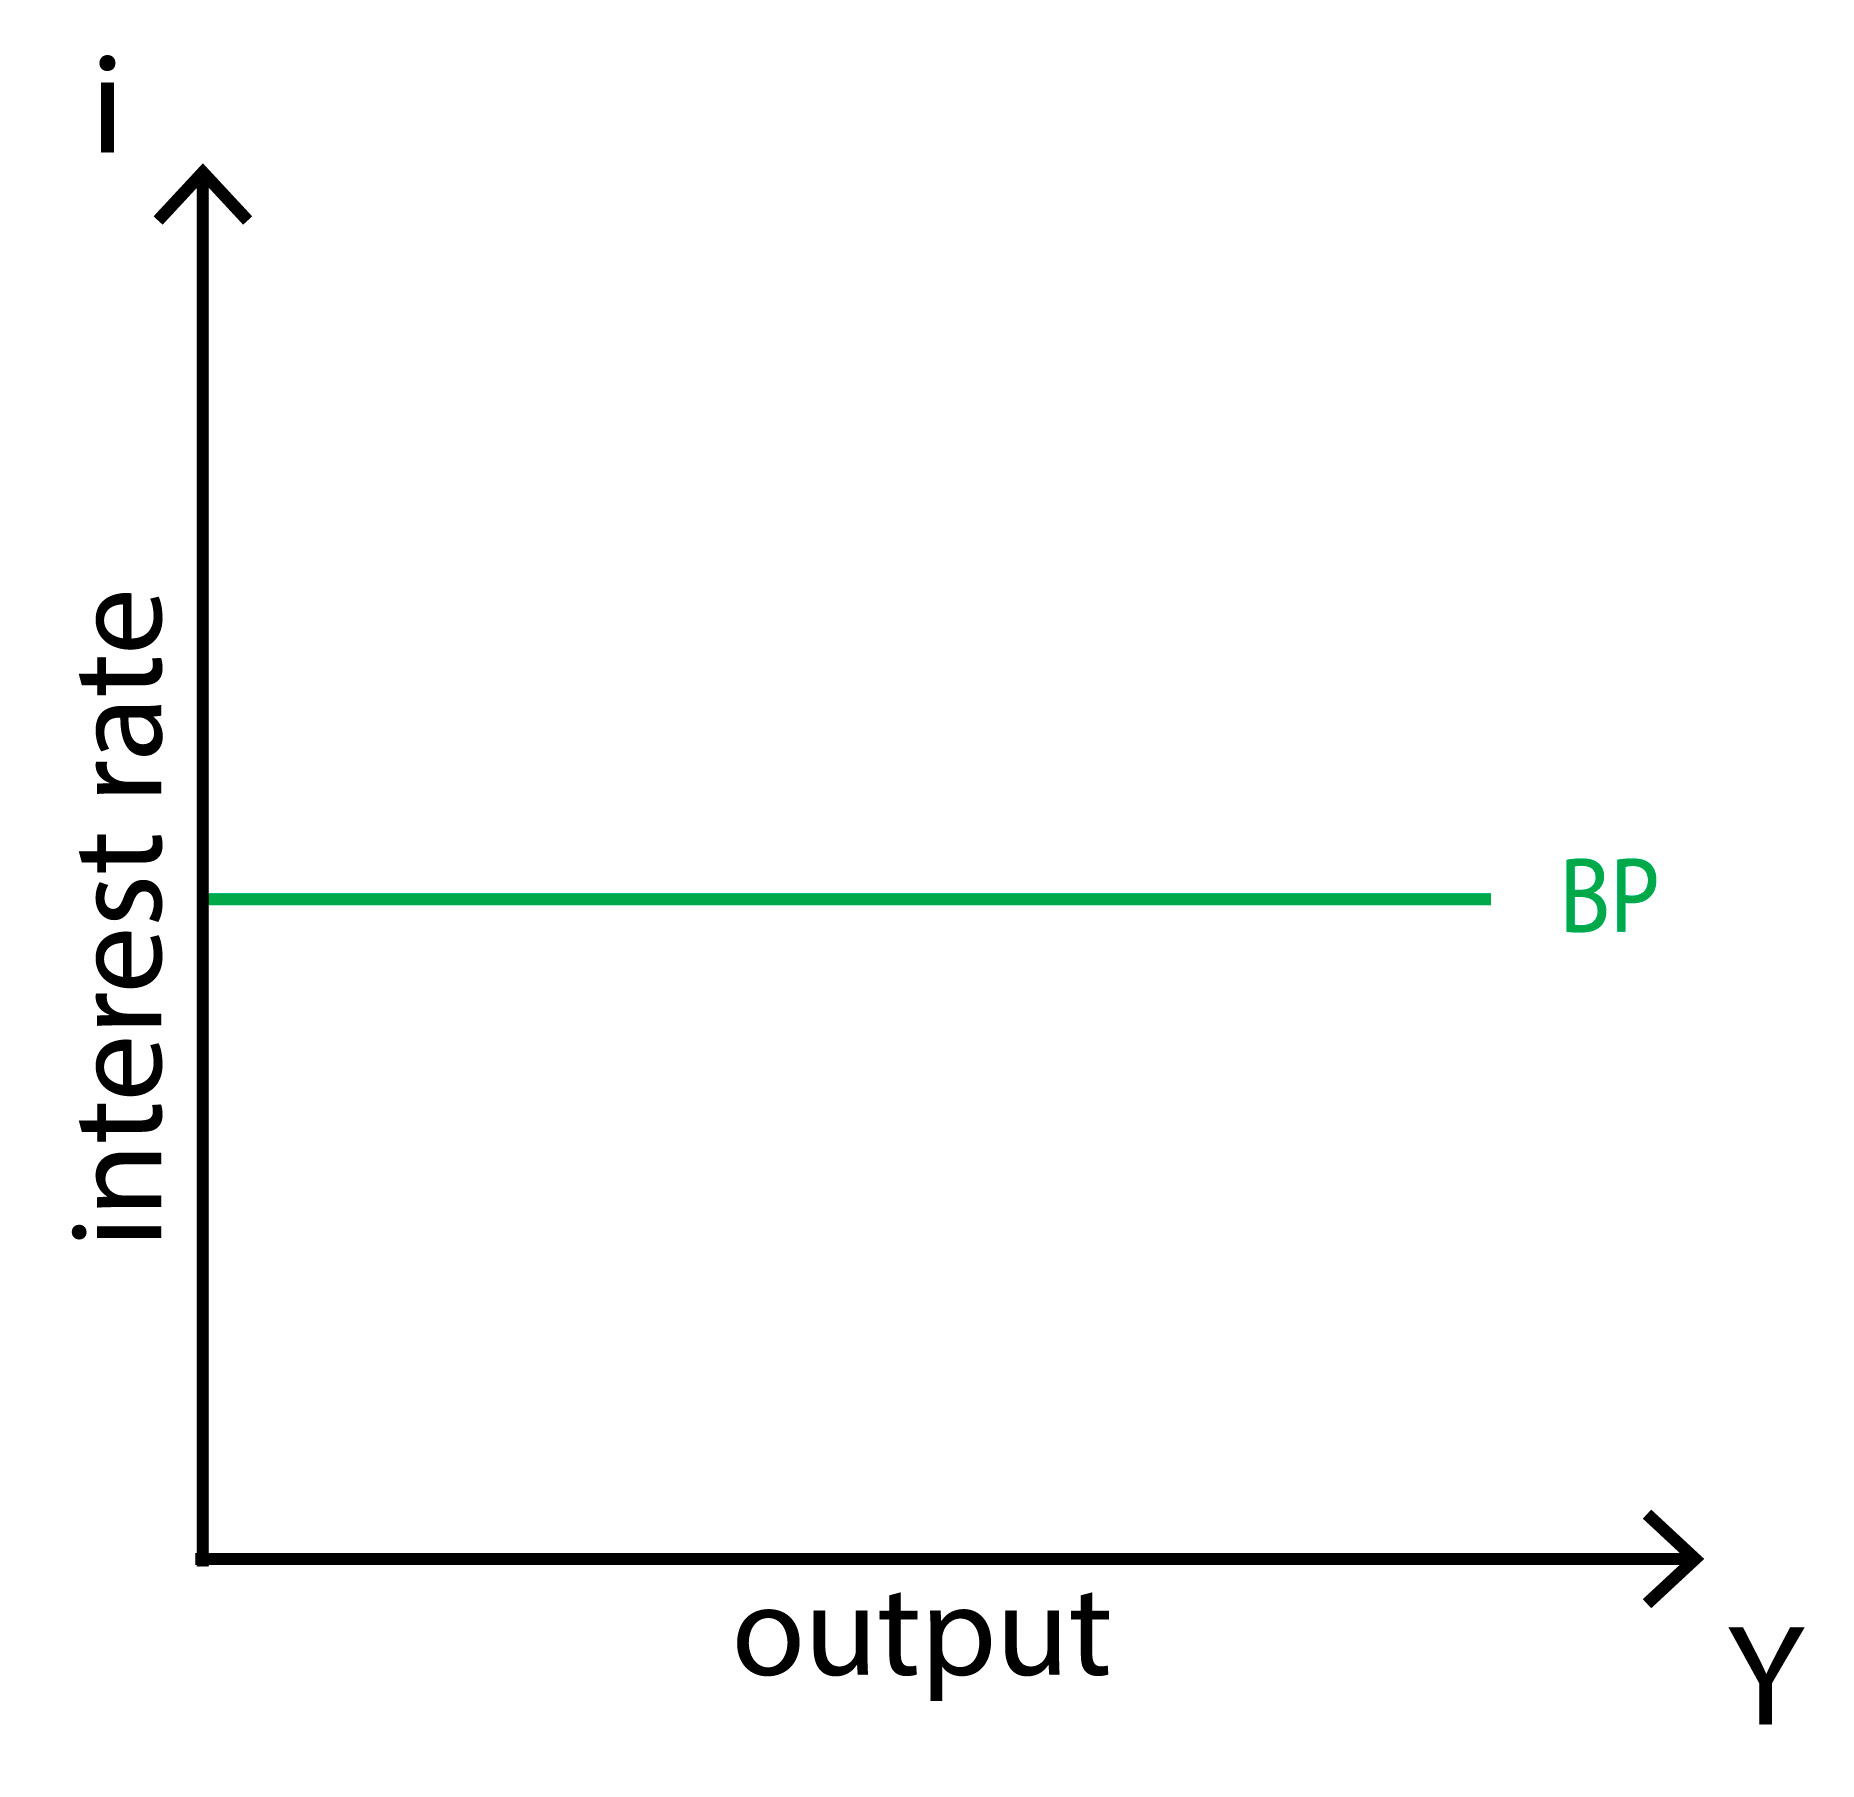 IS-LM-BP model - BP curve